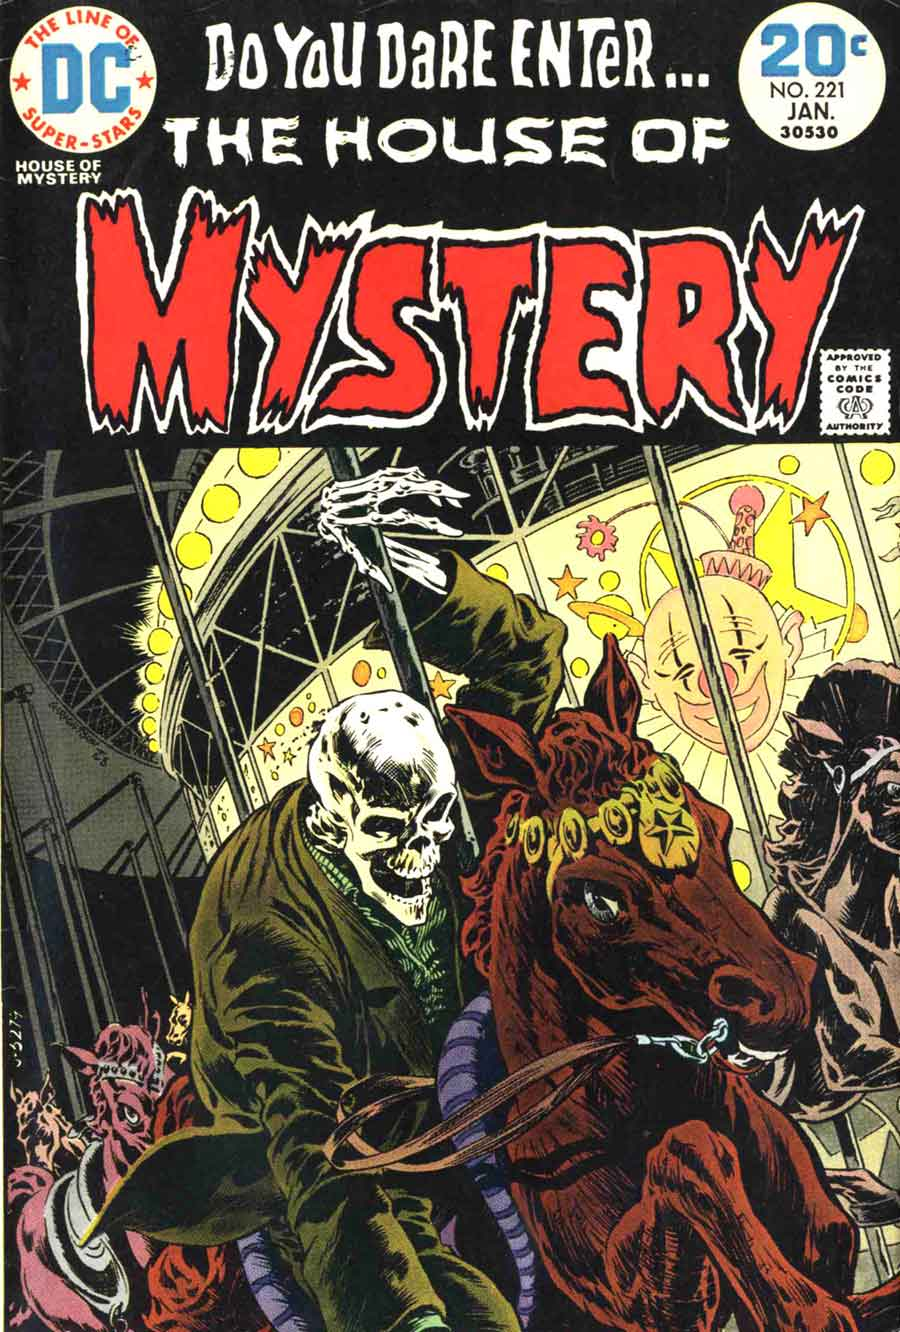 Bernie Wrightson dc bronze age horror 1970s comic book cover - House of Mystery #221